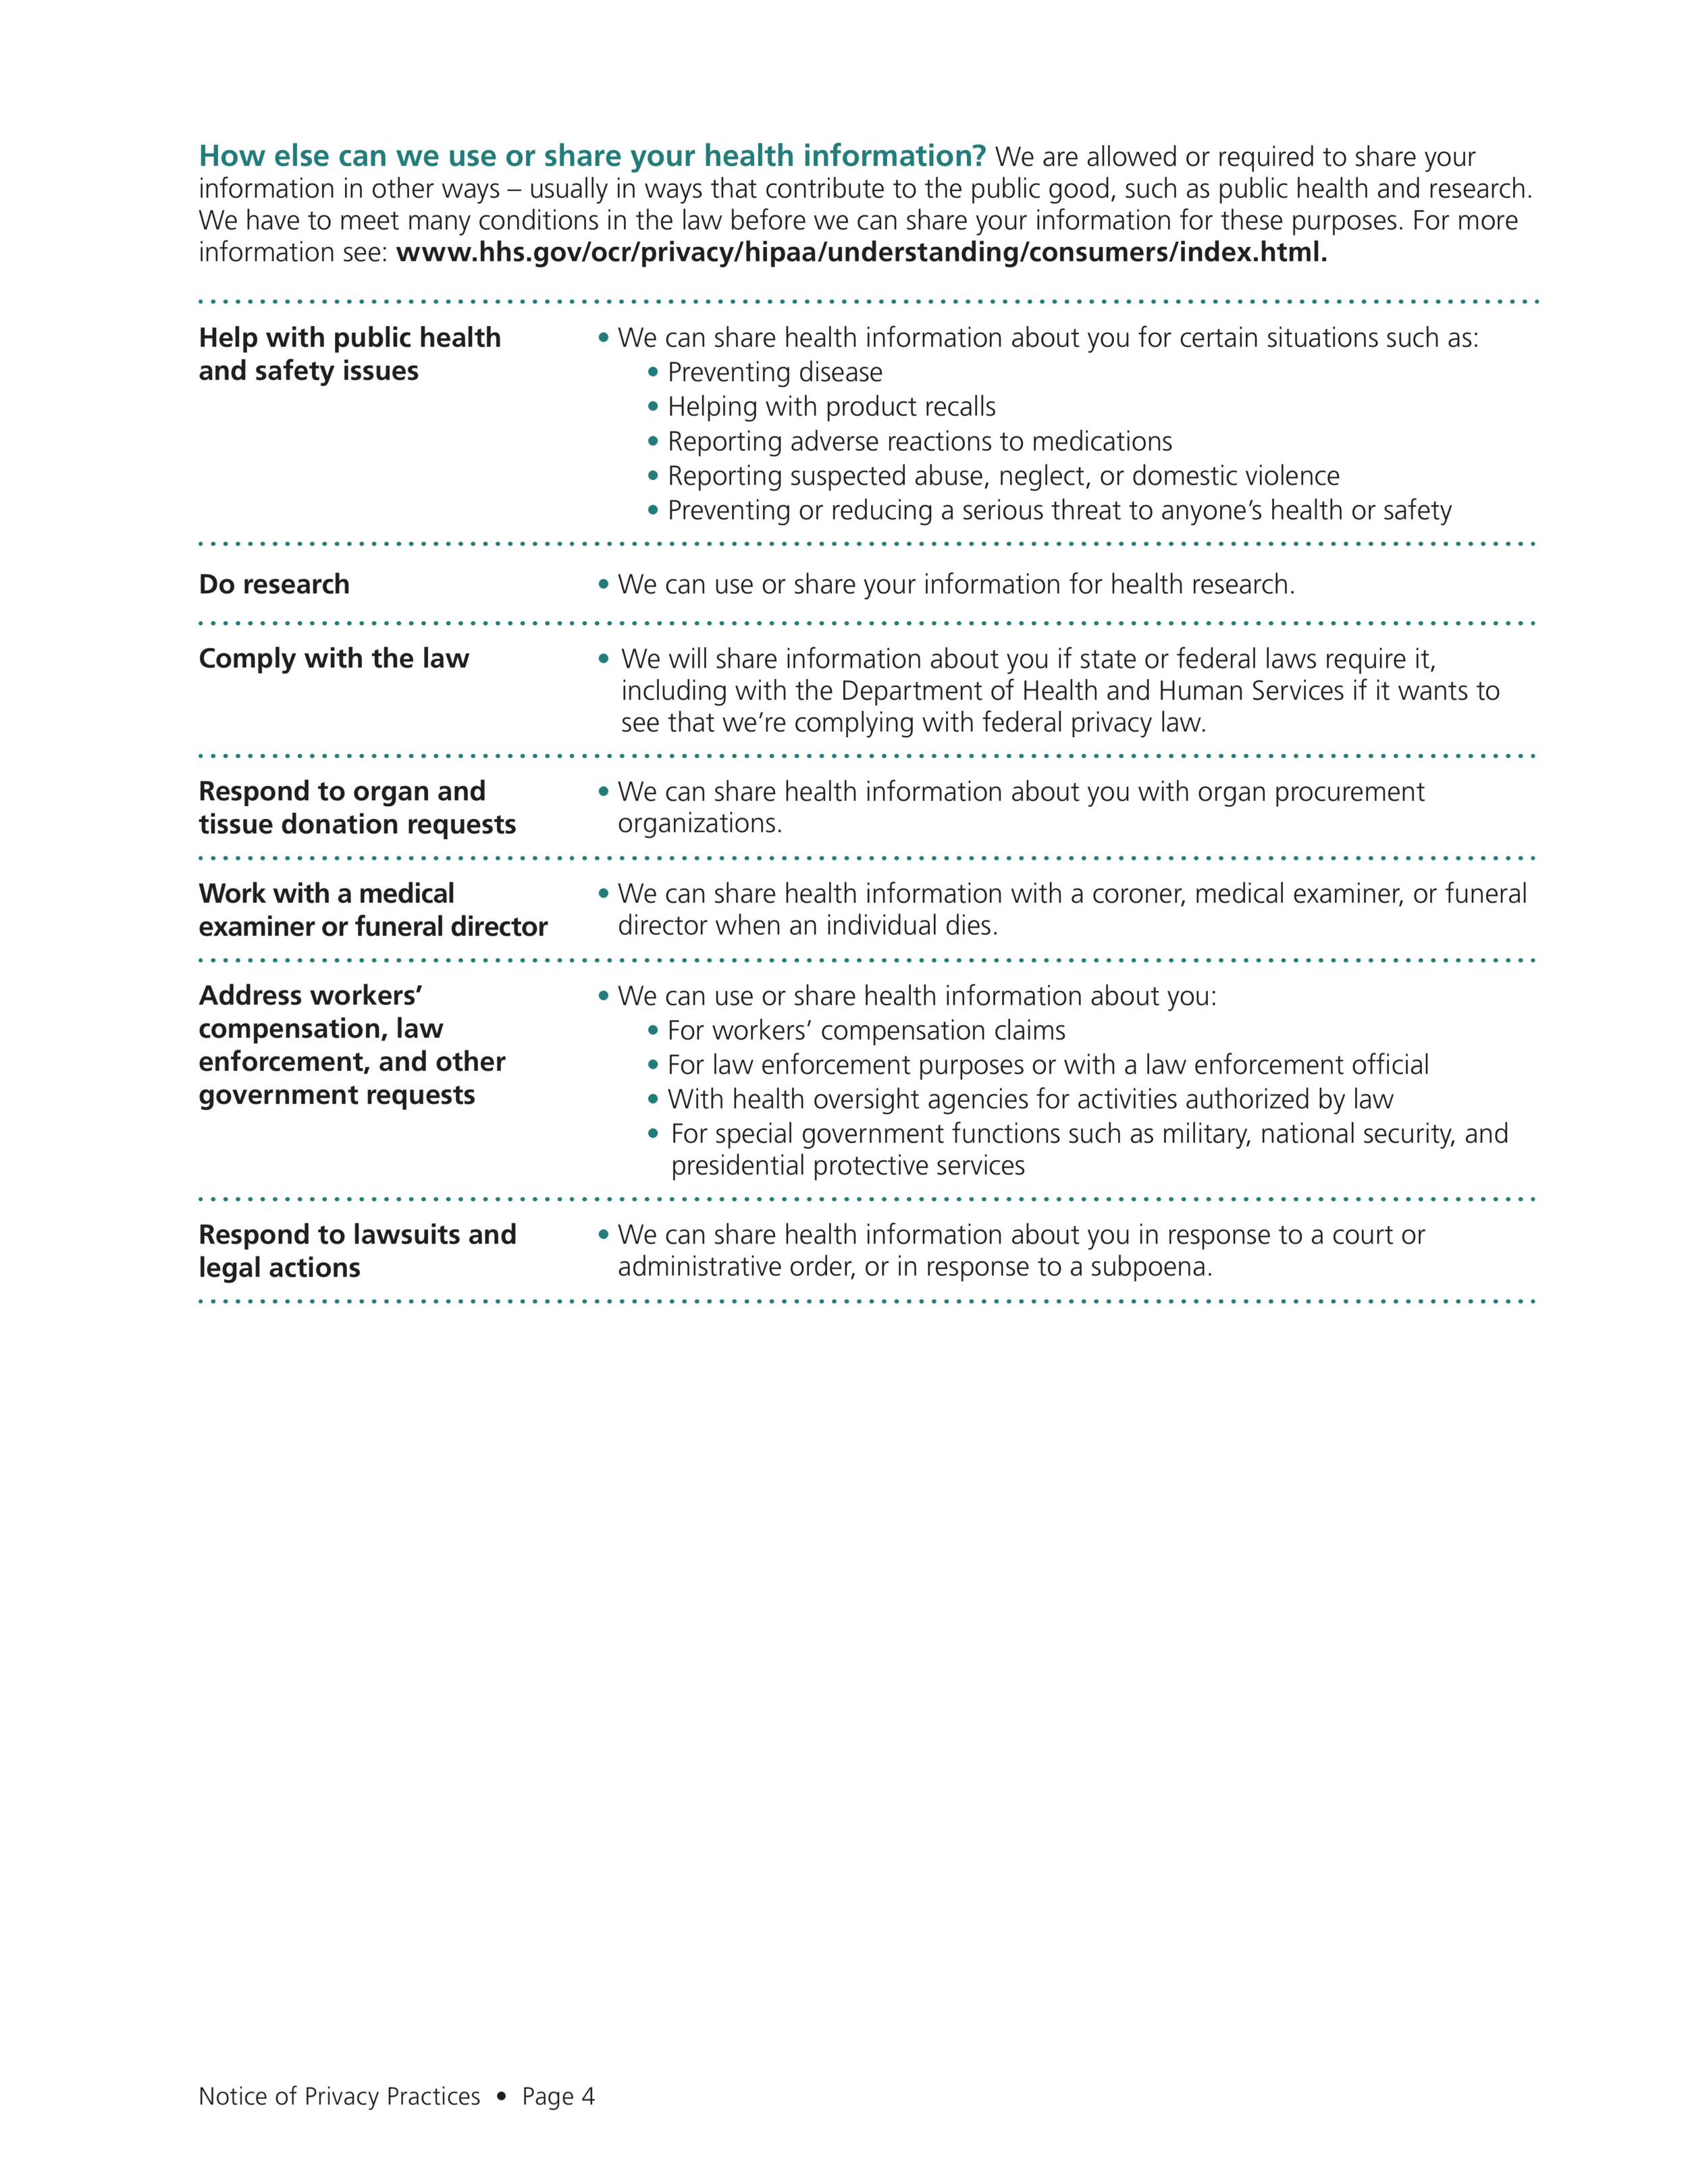 Notice of Privacy Practices 4.png